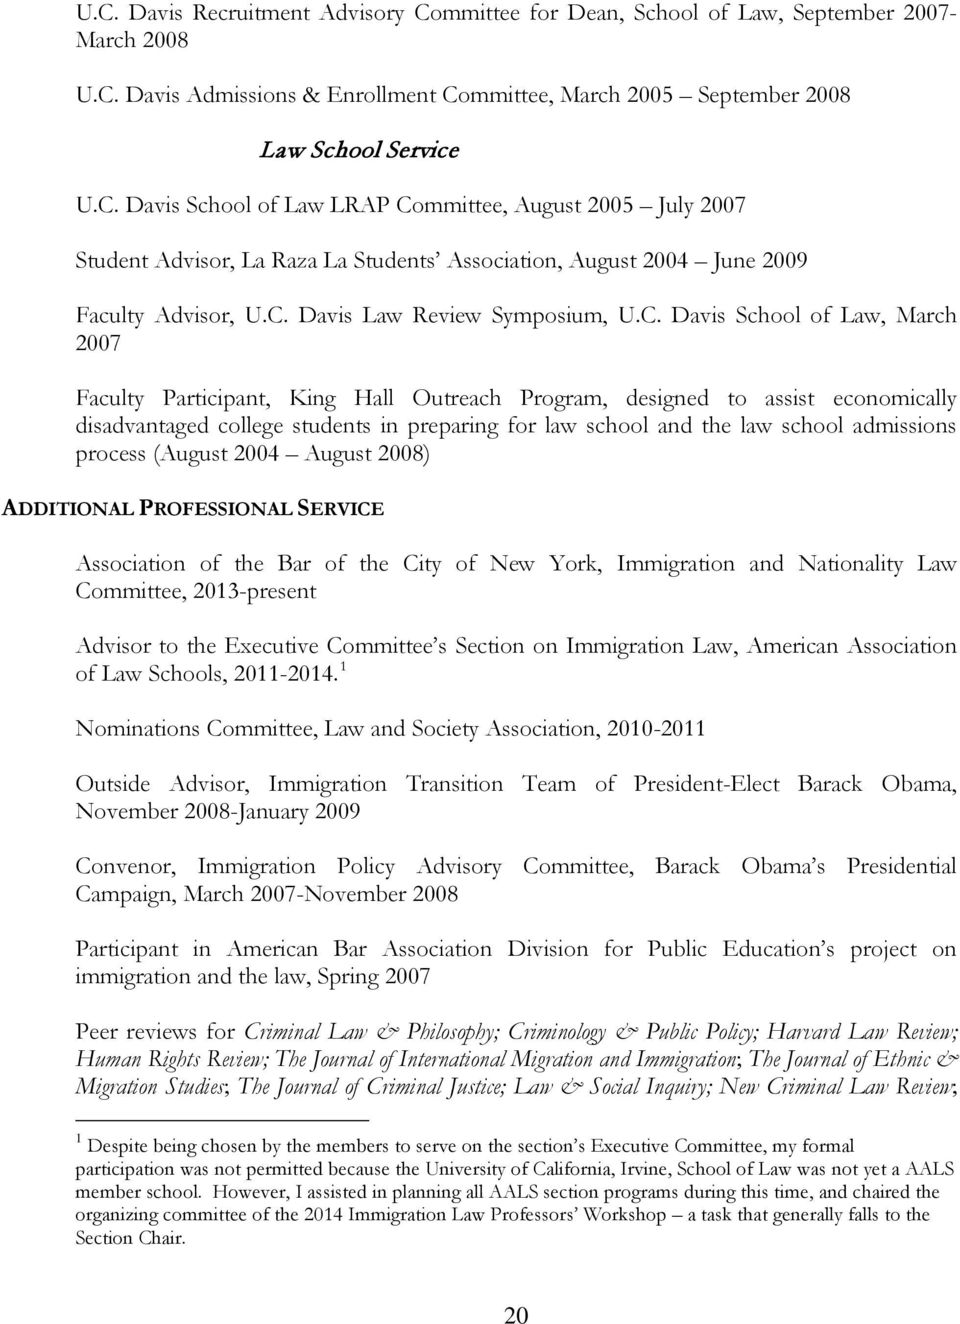 law school and the law school admissions process (August 2004 August 2008) ADDITIONAL PROFESSIONAL SERVICE Association of the Bar of the City of New York, Immigration and Nationality Law Committee,